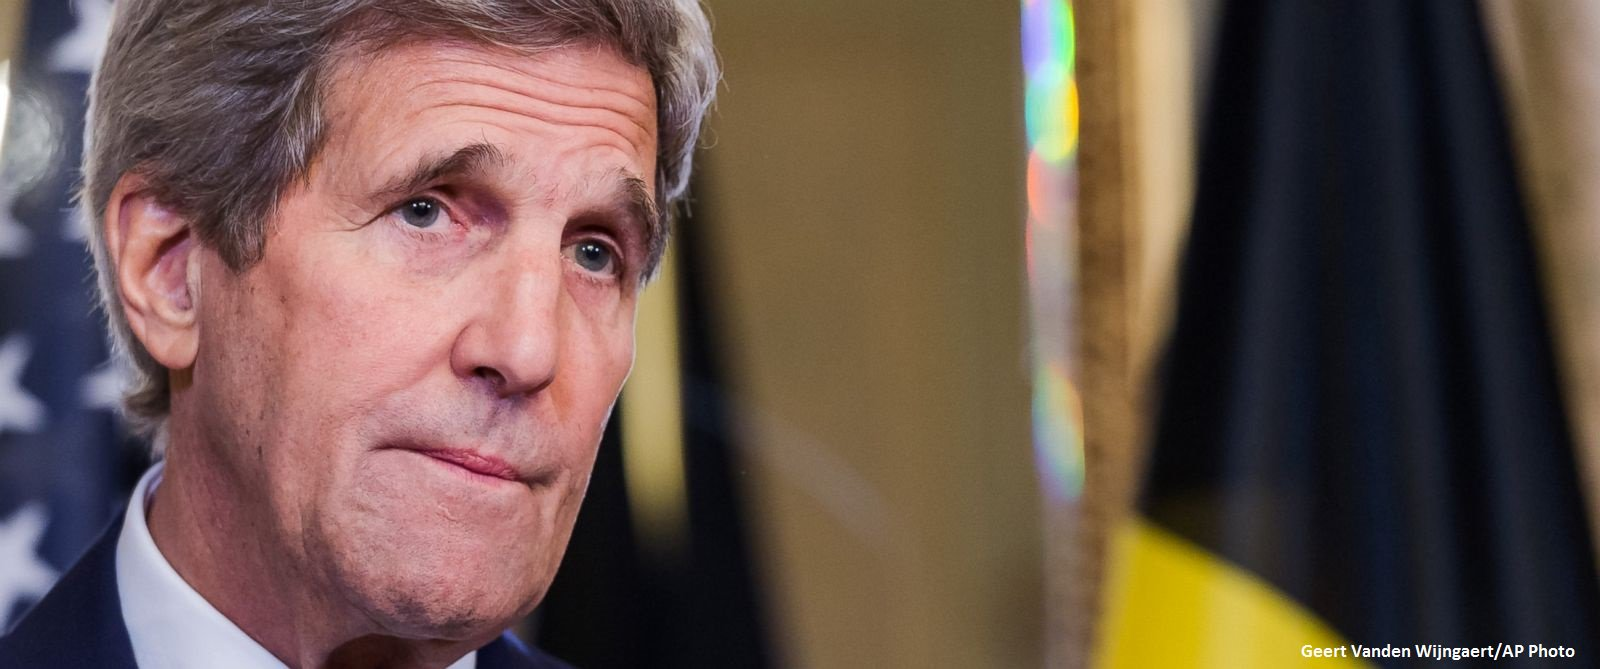 John Kerry to lead conference on climate change this week at Yale University. https://t.co/DT4uZlBfaB https://t.co/L04oz16FkY